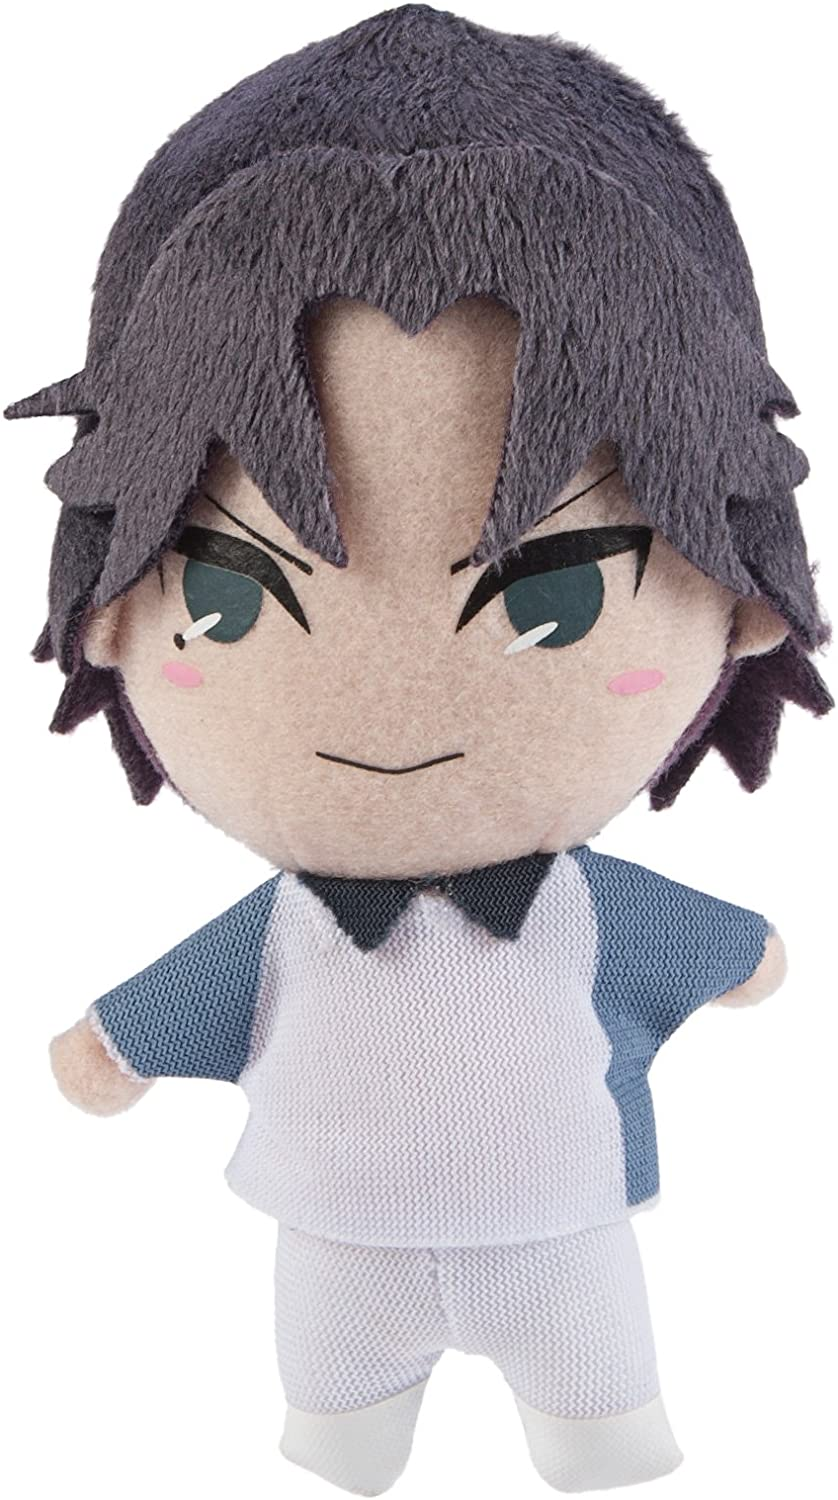 The New Prince of Tennis National Convention Series Keigo Atobe Juguete De Peluche